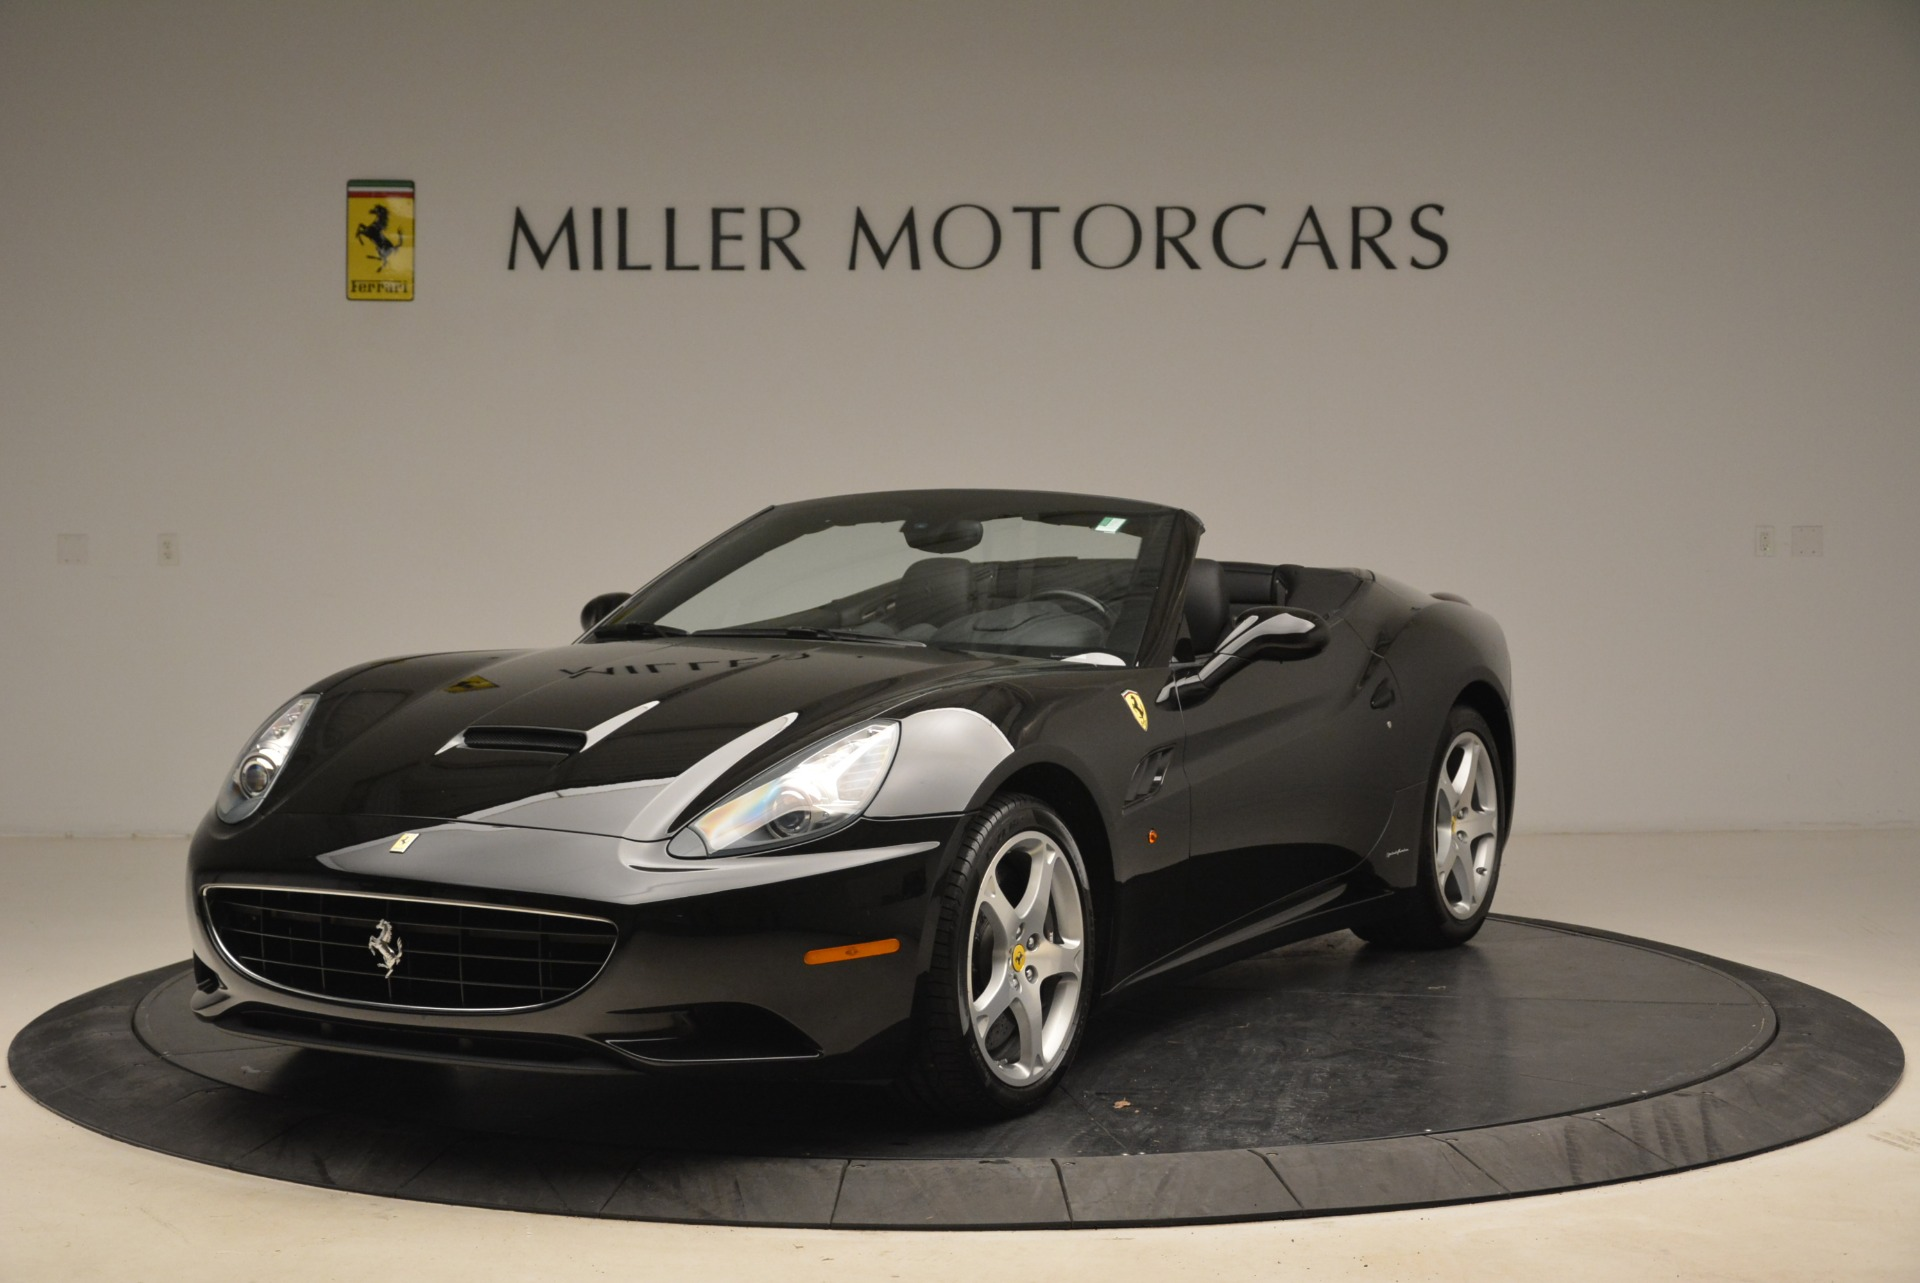 Used 2009 Ferrari California for sale Sold at Pagani of Greenwich in Greenwich CT 06830 1